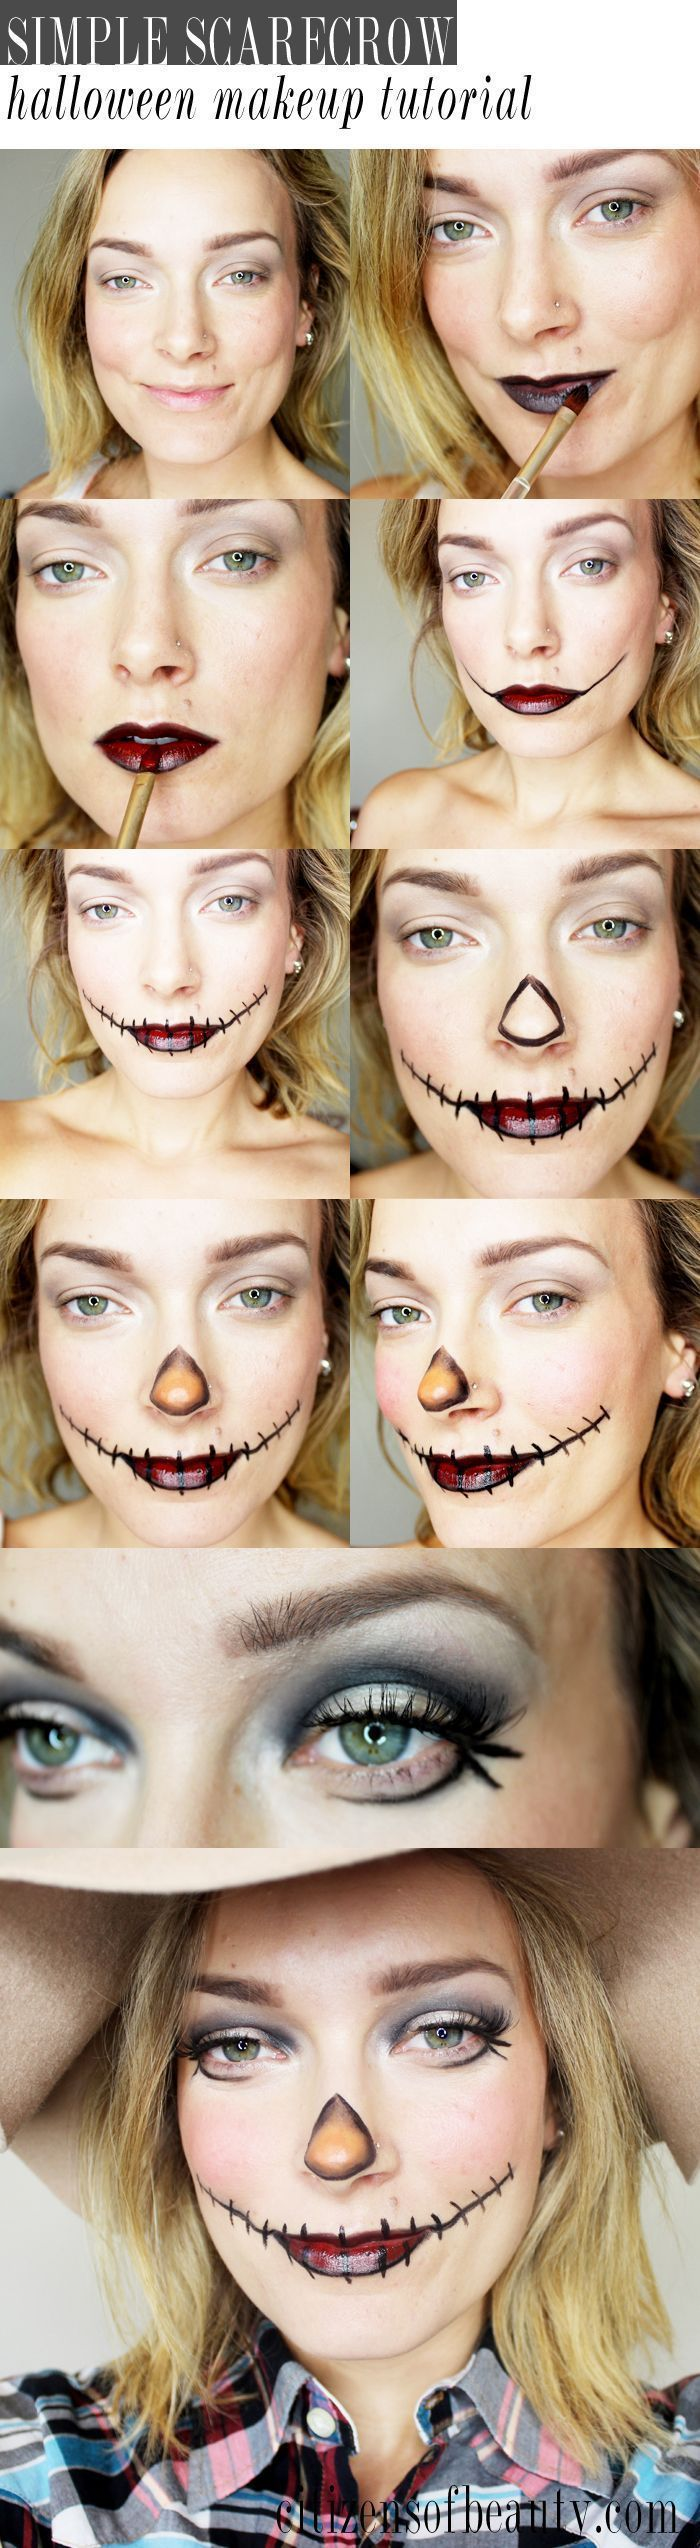 Simple Scarecrow Makeup for Halloween #scarecrowmakeup Simple Scarecrow Makeup for Halloween Simple Scarecrow Makeup for Halloween – Citizens of Beauty Source […] The post Simple Scarecrow Makeup for Halloween appeared first on How To Be Trendy. #epouvantaildeguisement